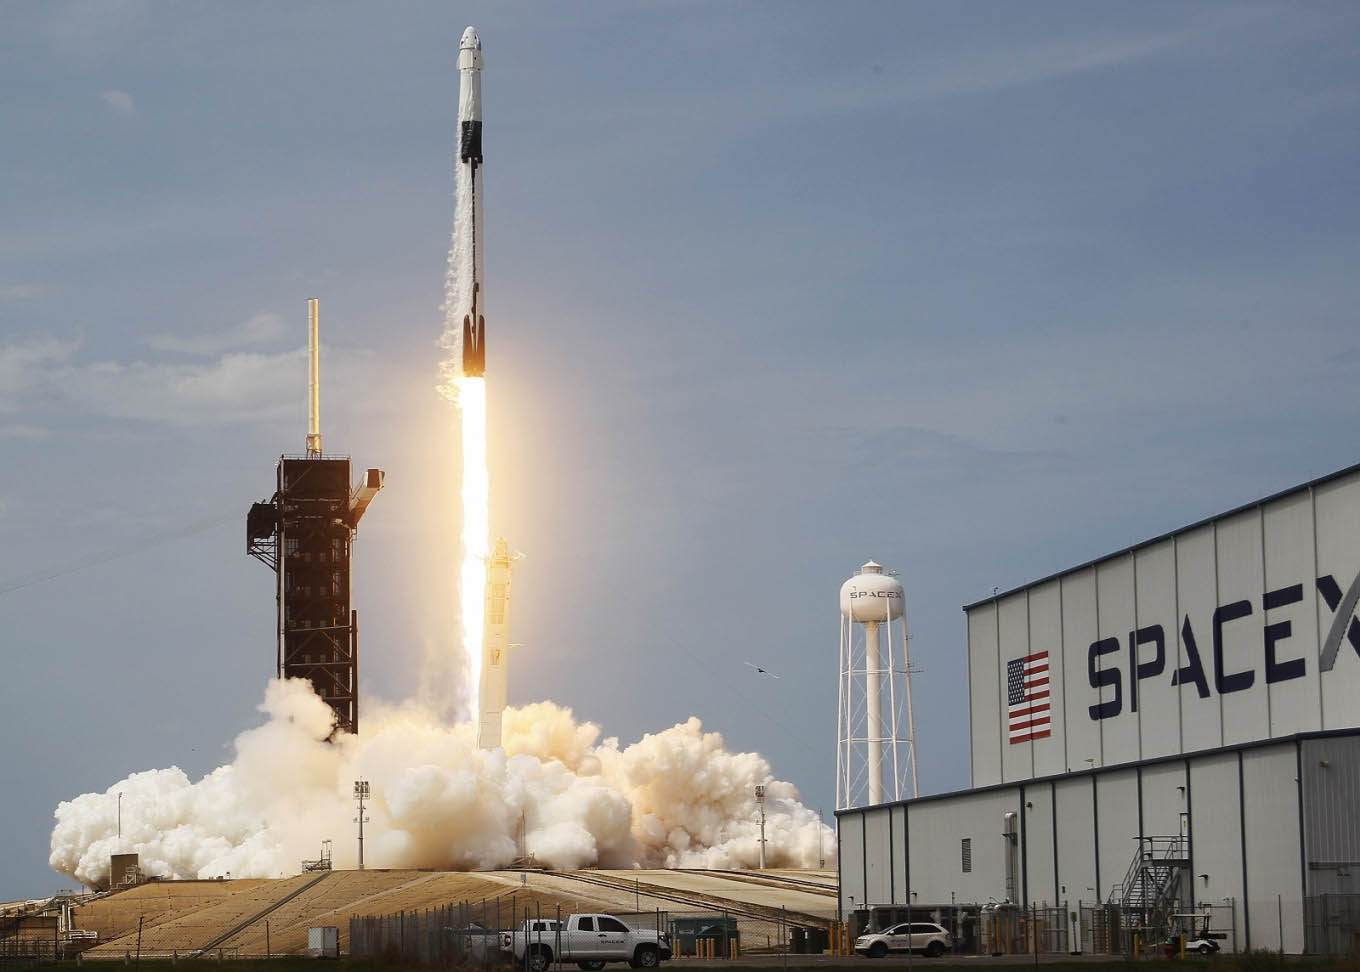 US Made History by Sending Human into Space from SpaceX's Private Rocket